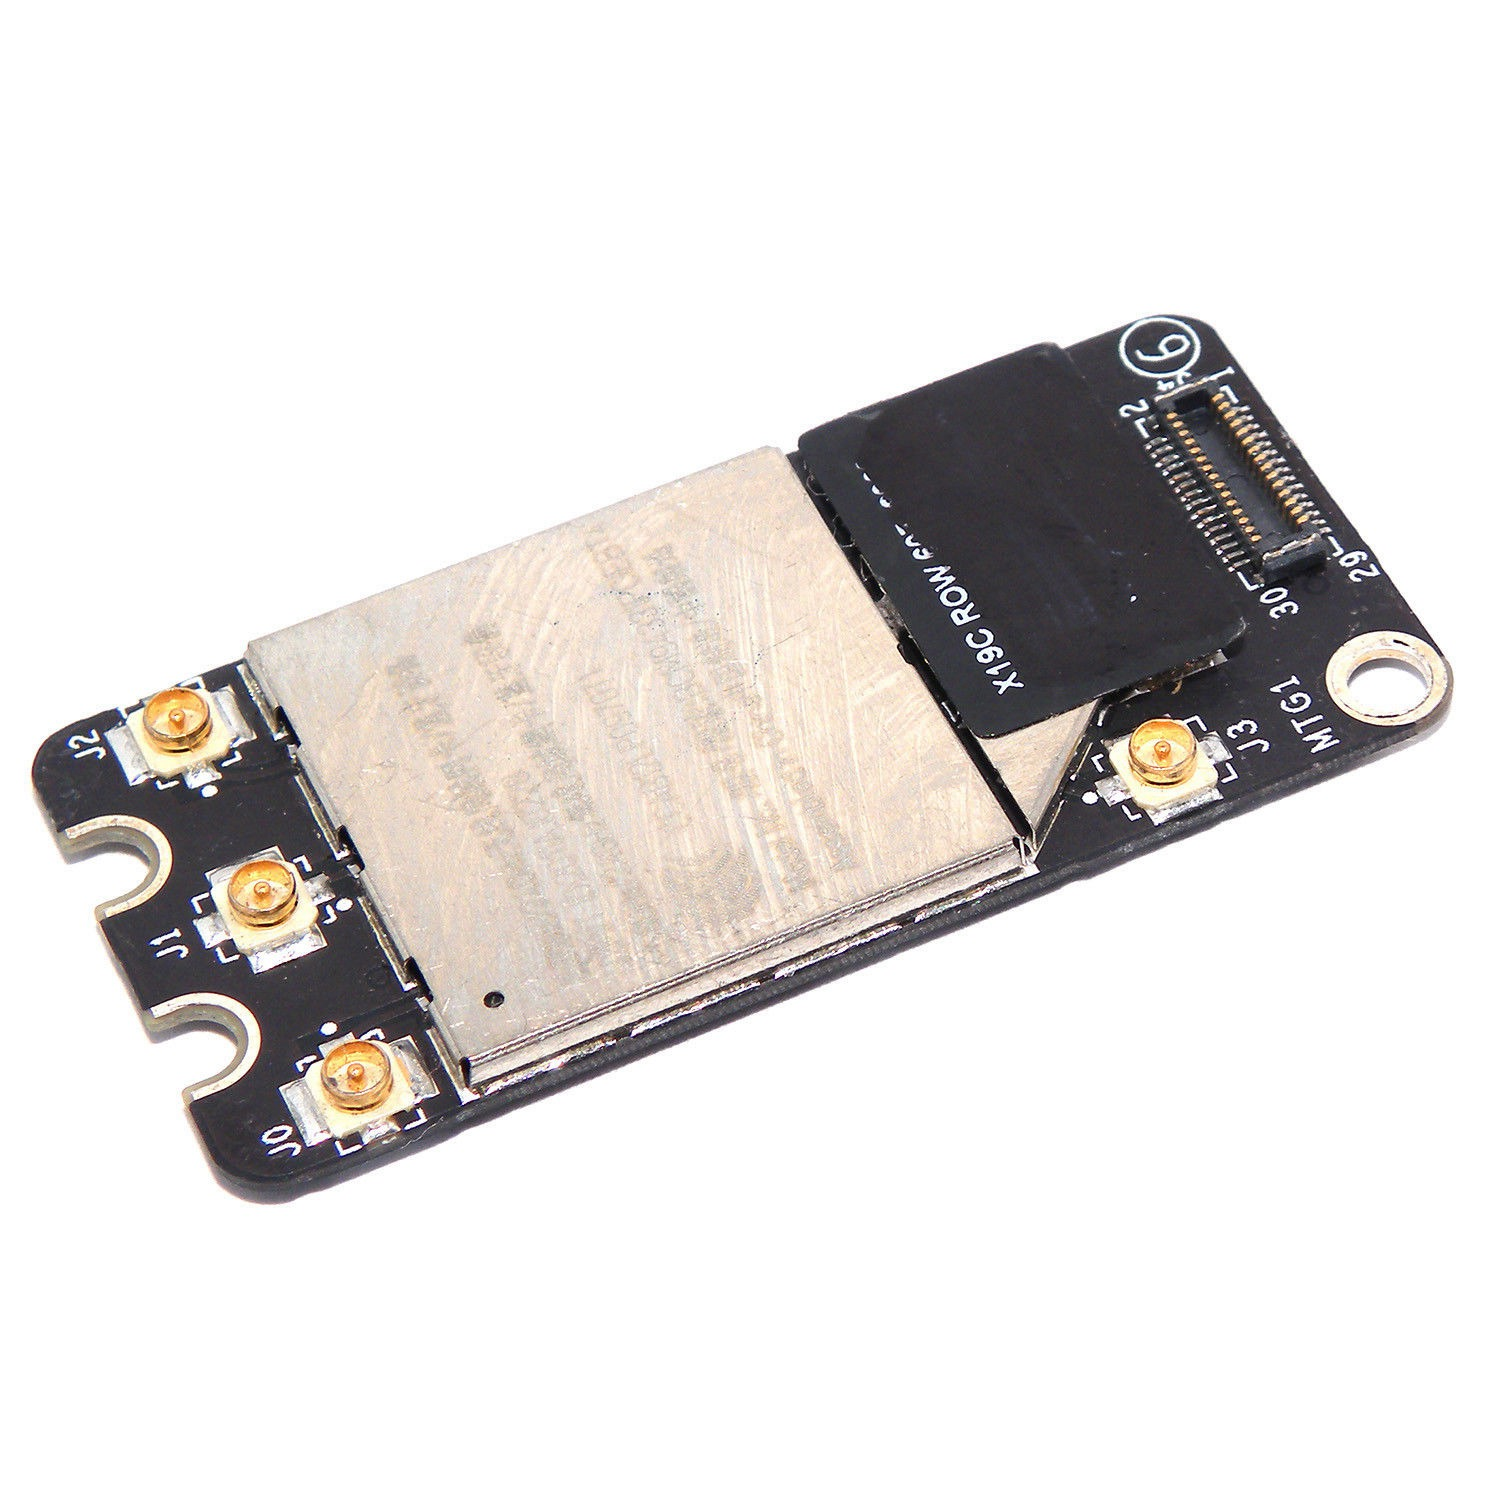 BCM94331PCIEBT4CAX BT 4.0 WiFi Card For MacBook Pro A1278 A1286 A1297 2011 2012